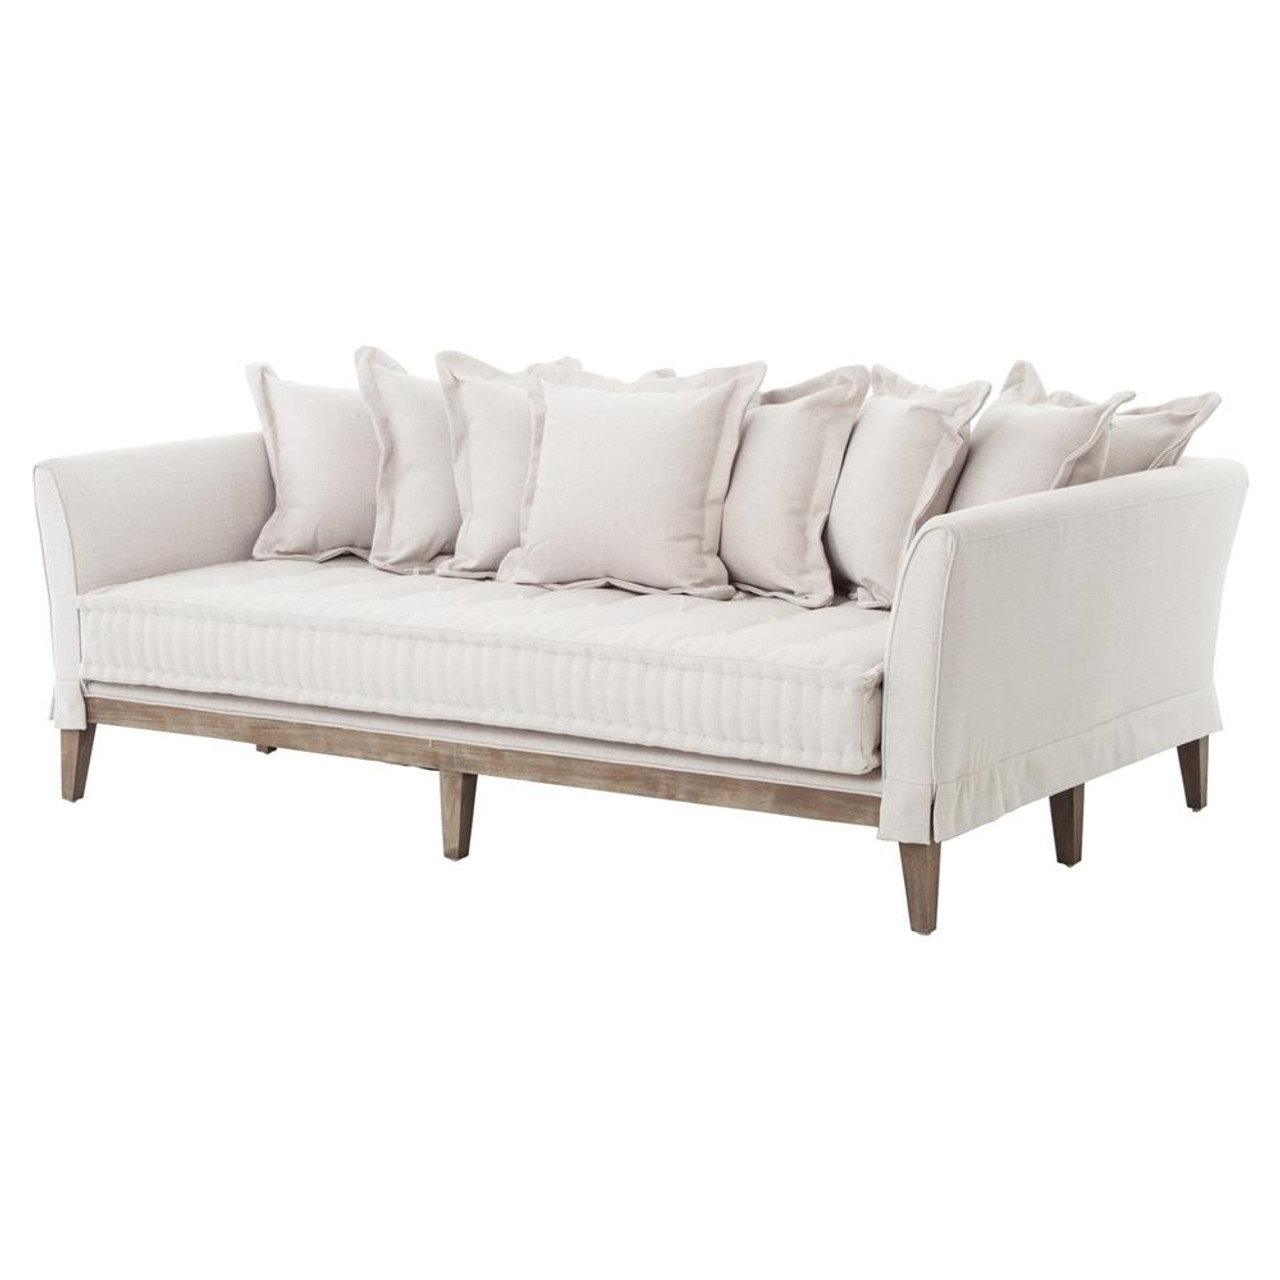 theory upholstered daybed couch